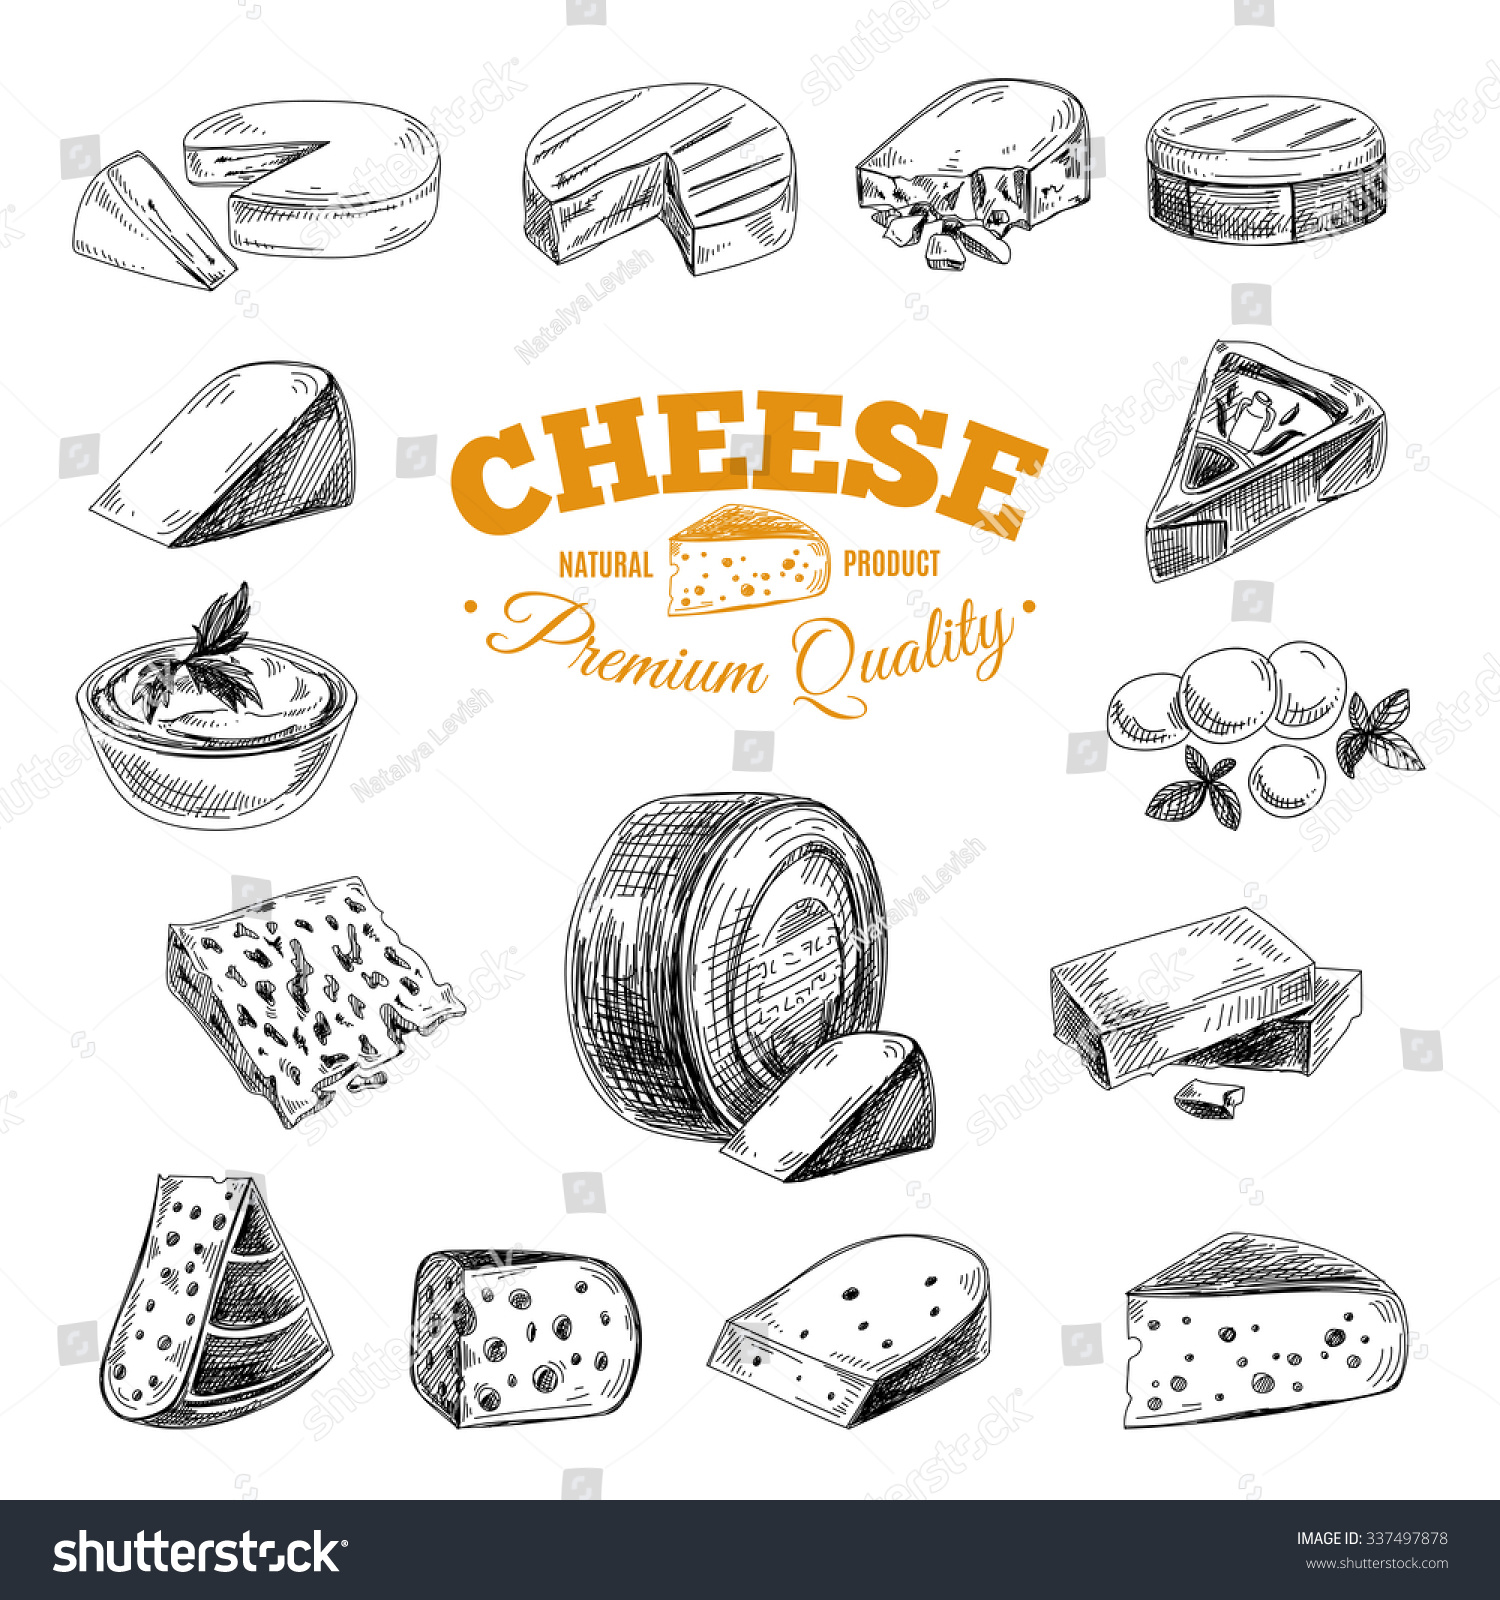 Vector hand drawn illustration with cheeses Sketch